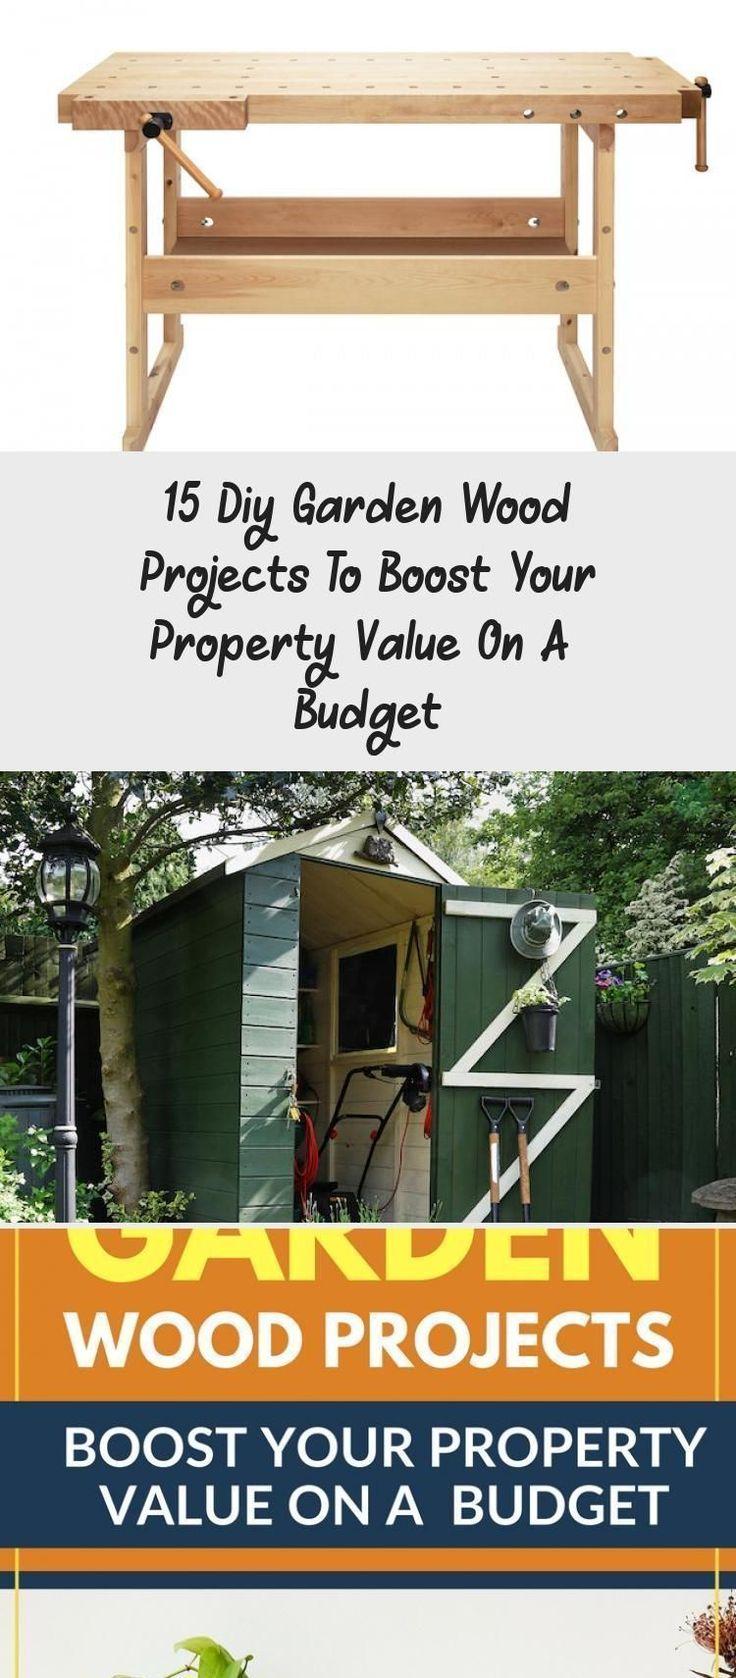 15 Diy Garden Wood Projects To Boost Your Property Value On A Budget Hangendekrautergarten Der Kleine Hangende Krautergarten In Der Kuche In 2020 Wood Projects Diy Projects